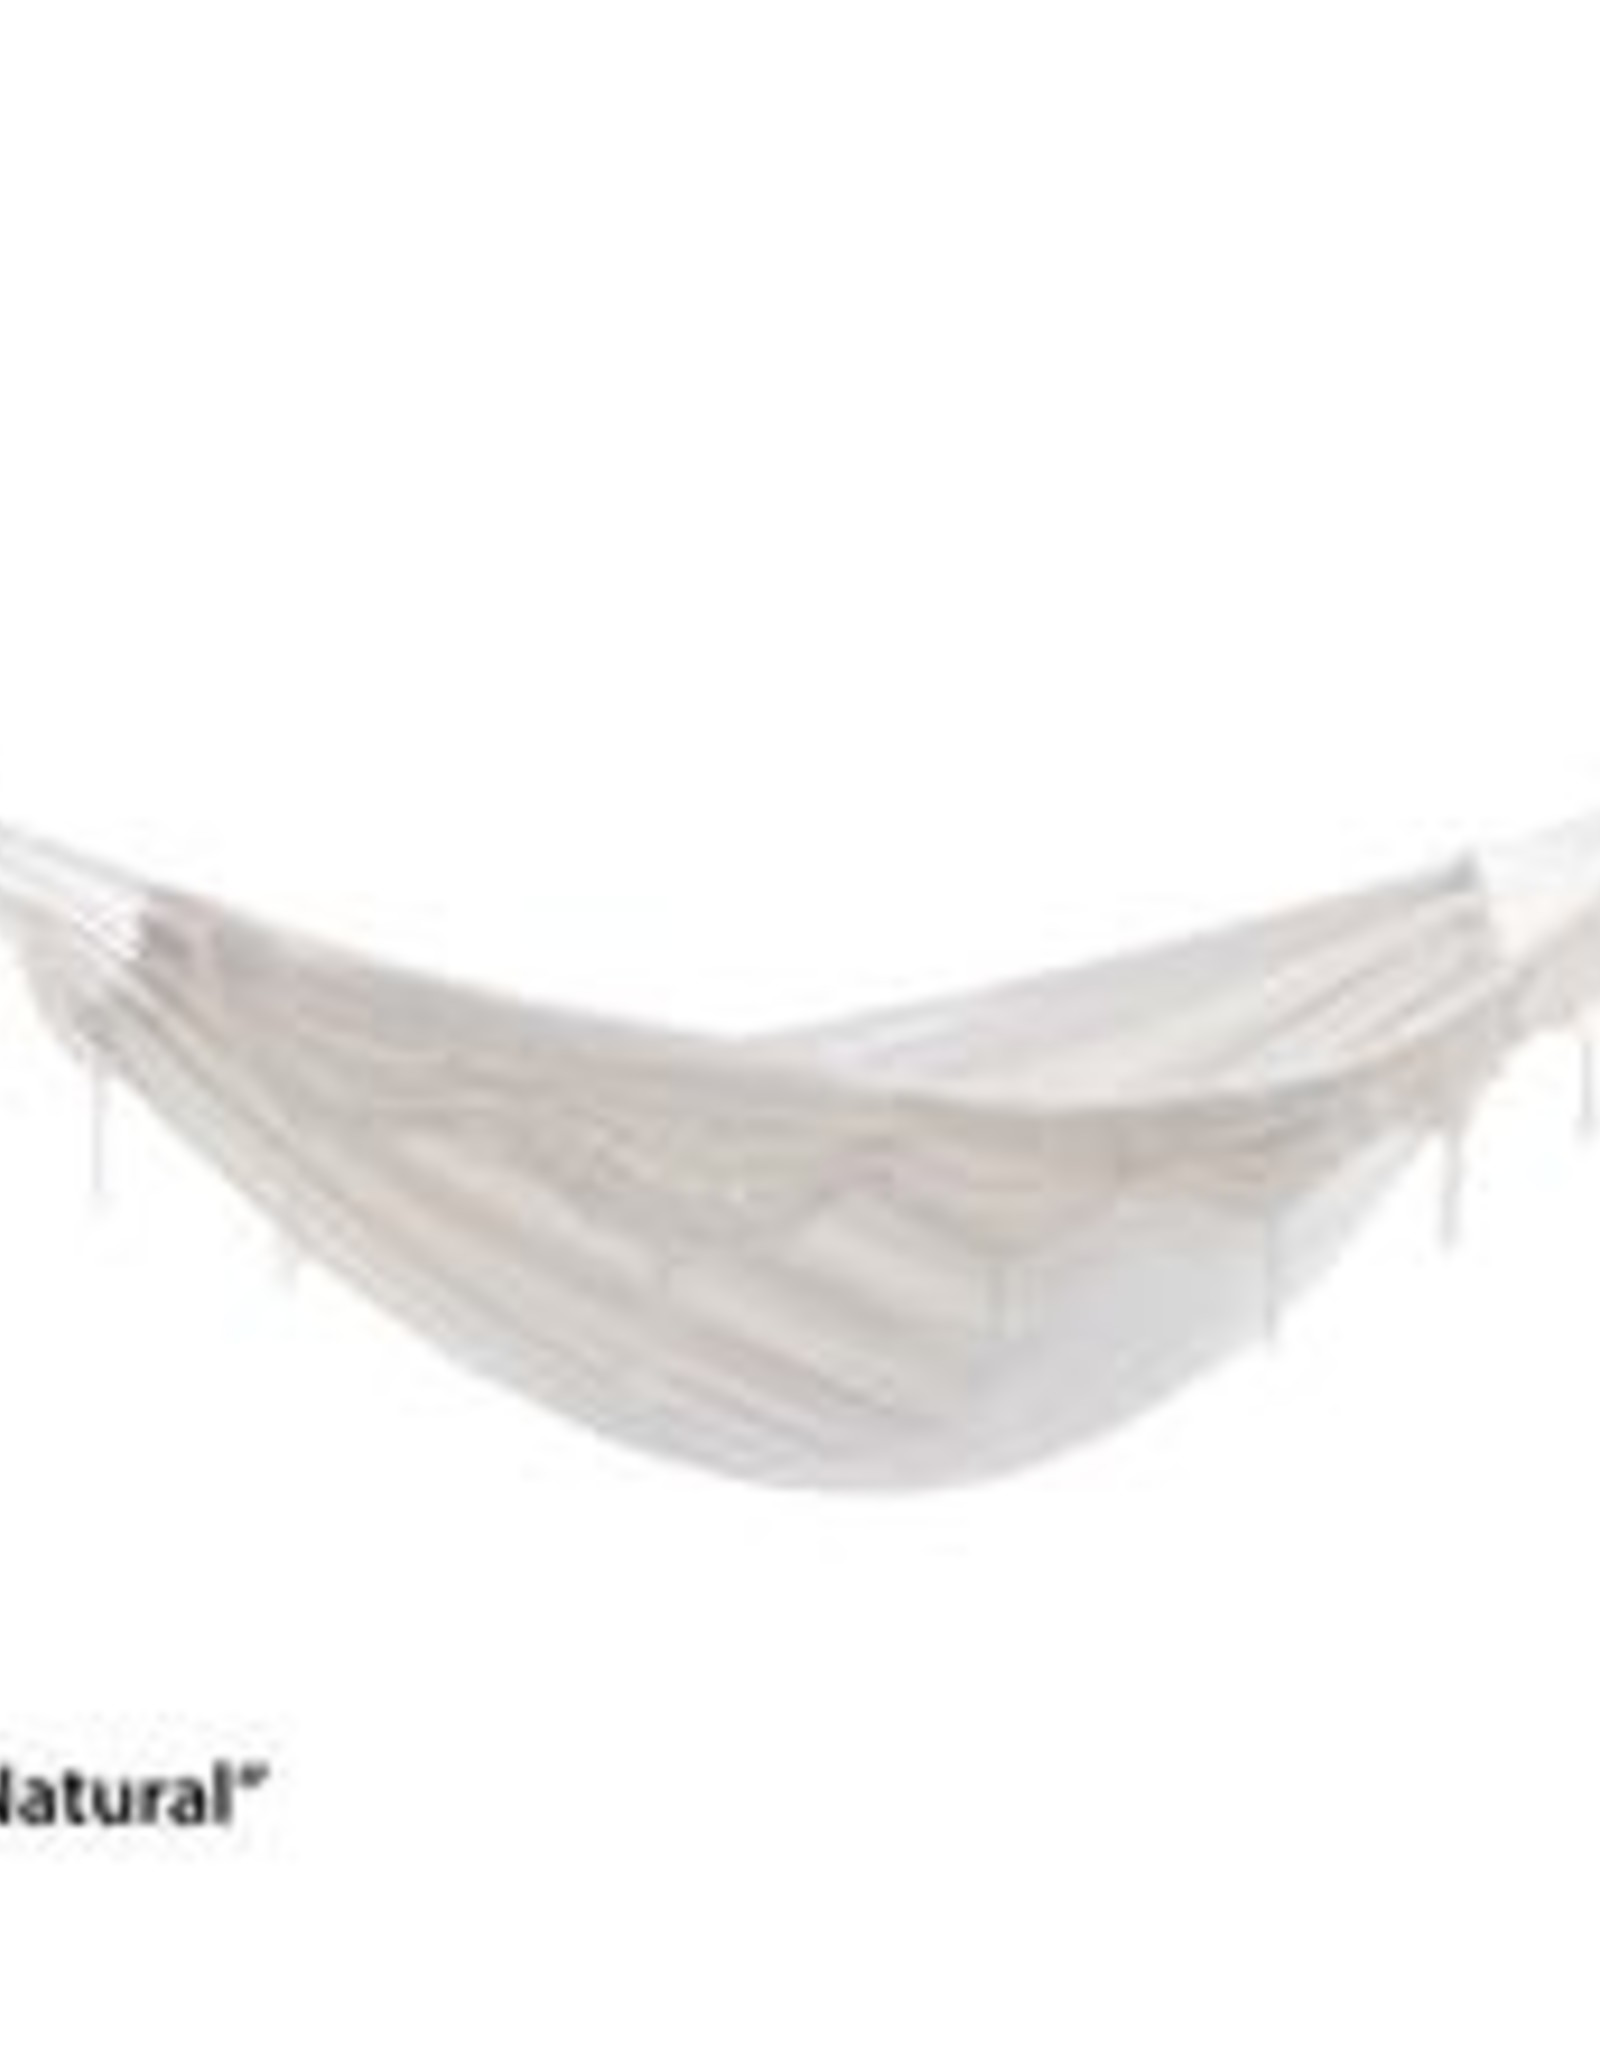 Hammock Vivere Brazilian Double Deluxe Natural 400